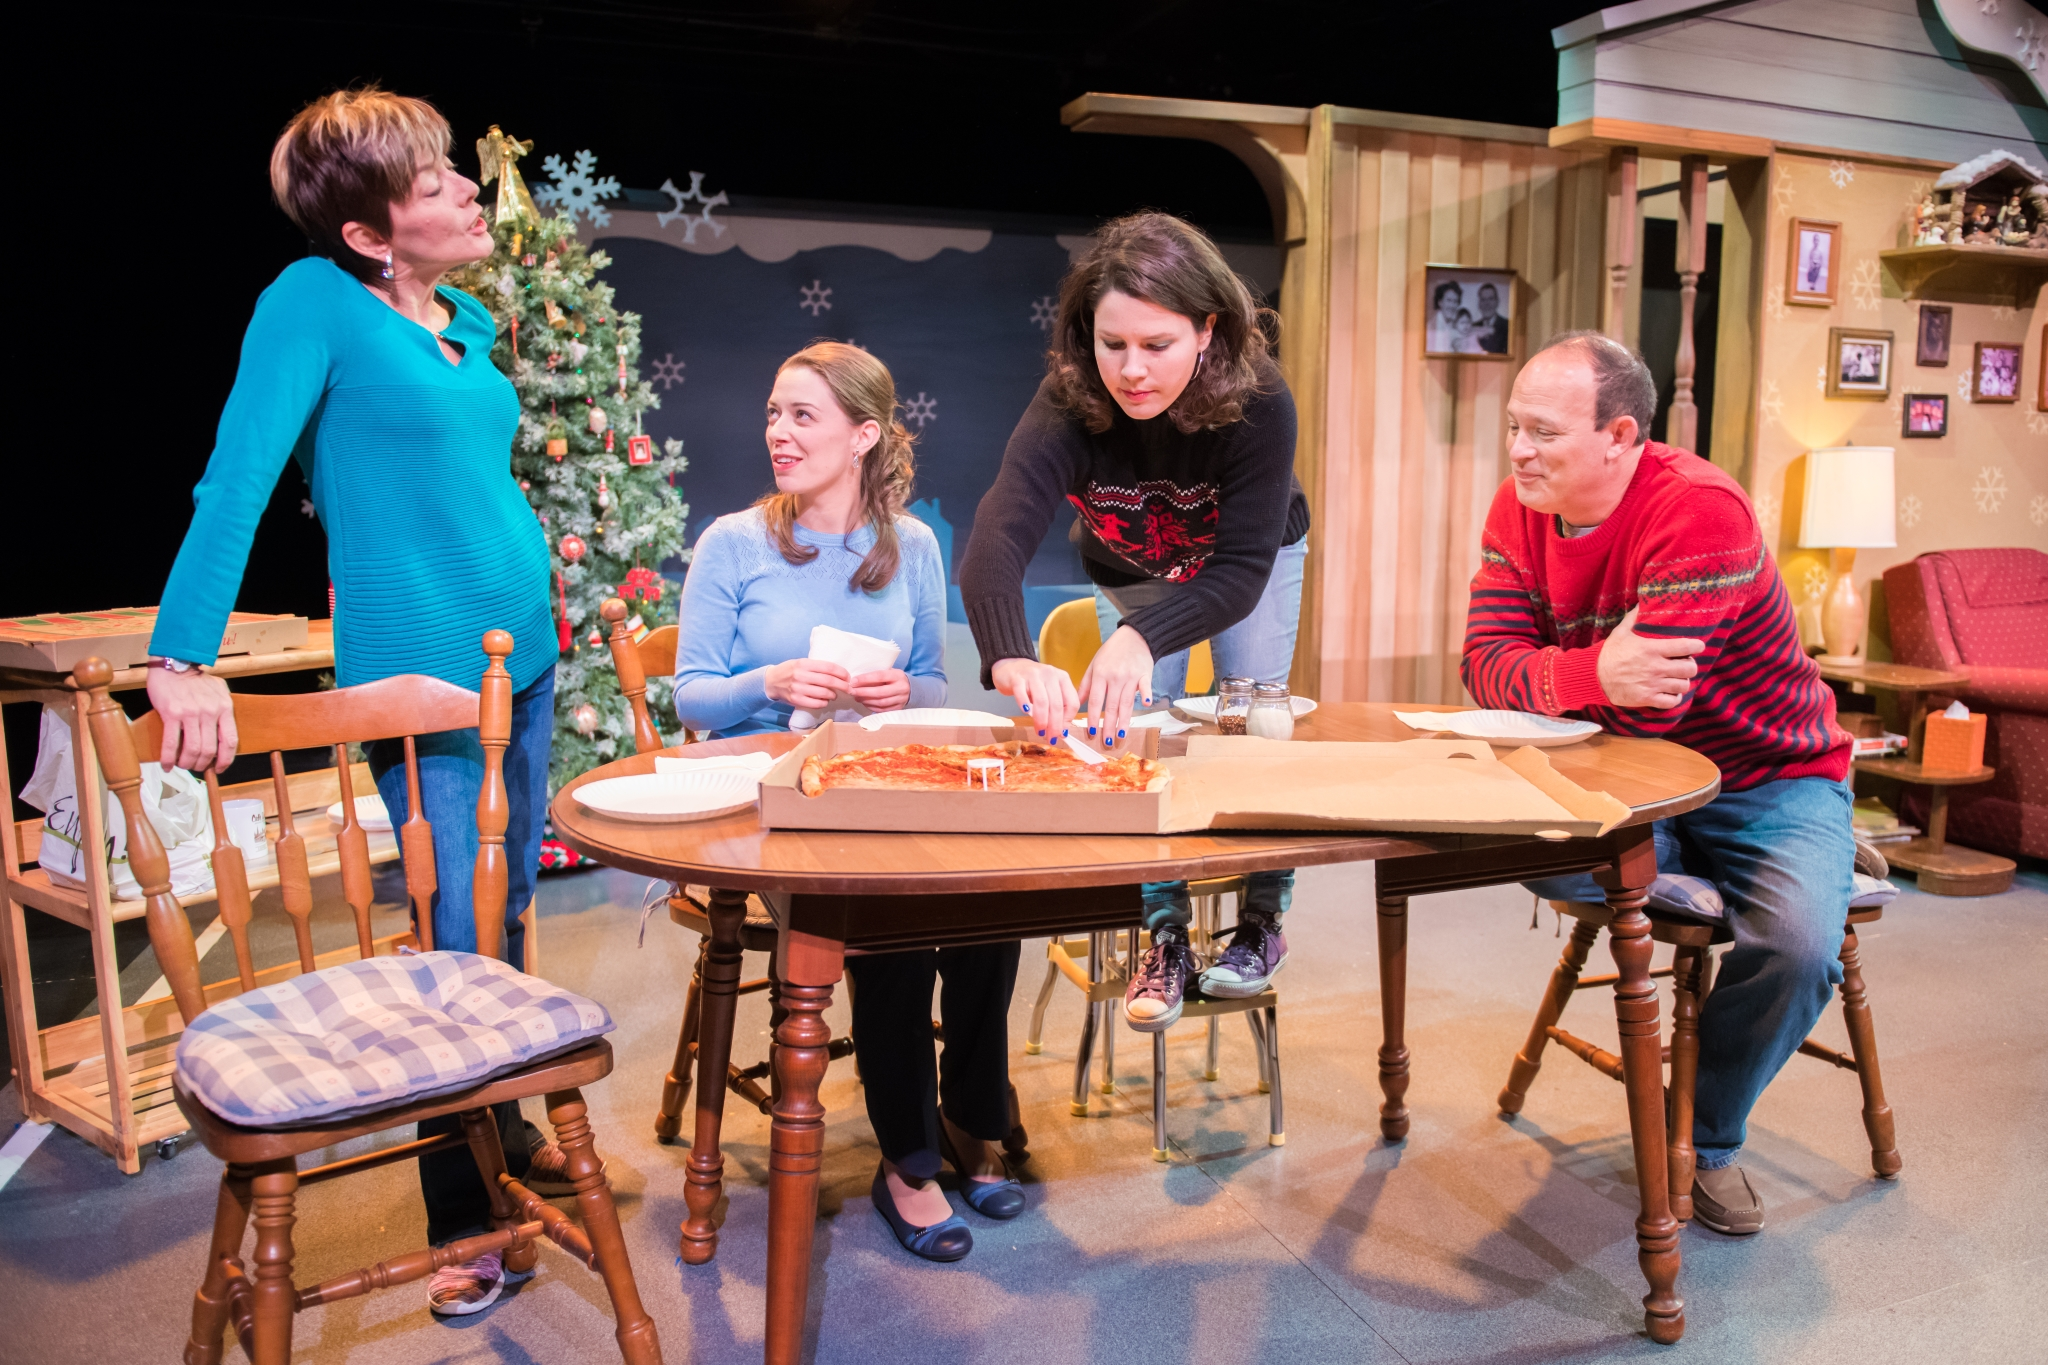 L-R: Mary MacDonald Kerr as Denise McShane, Eva Nimmer as Kelly O'Rourke, Sara Zientek as Abby McShane, Tom Klubertanz as Terry McShane. Photo by Paul Ruffolo.